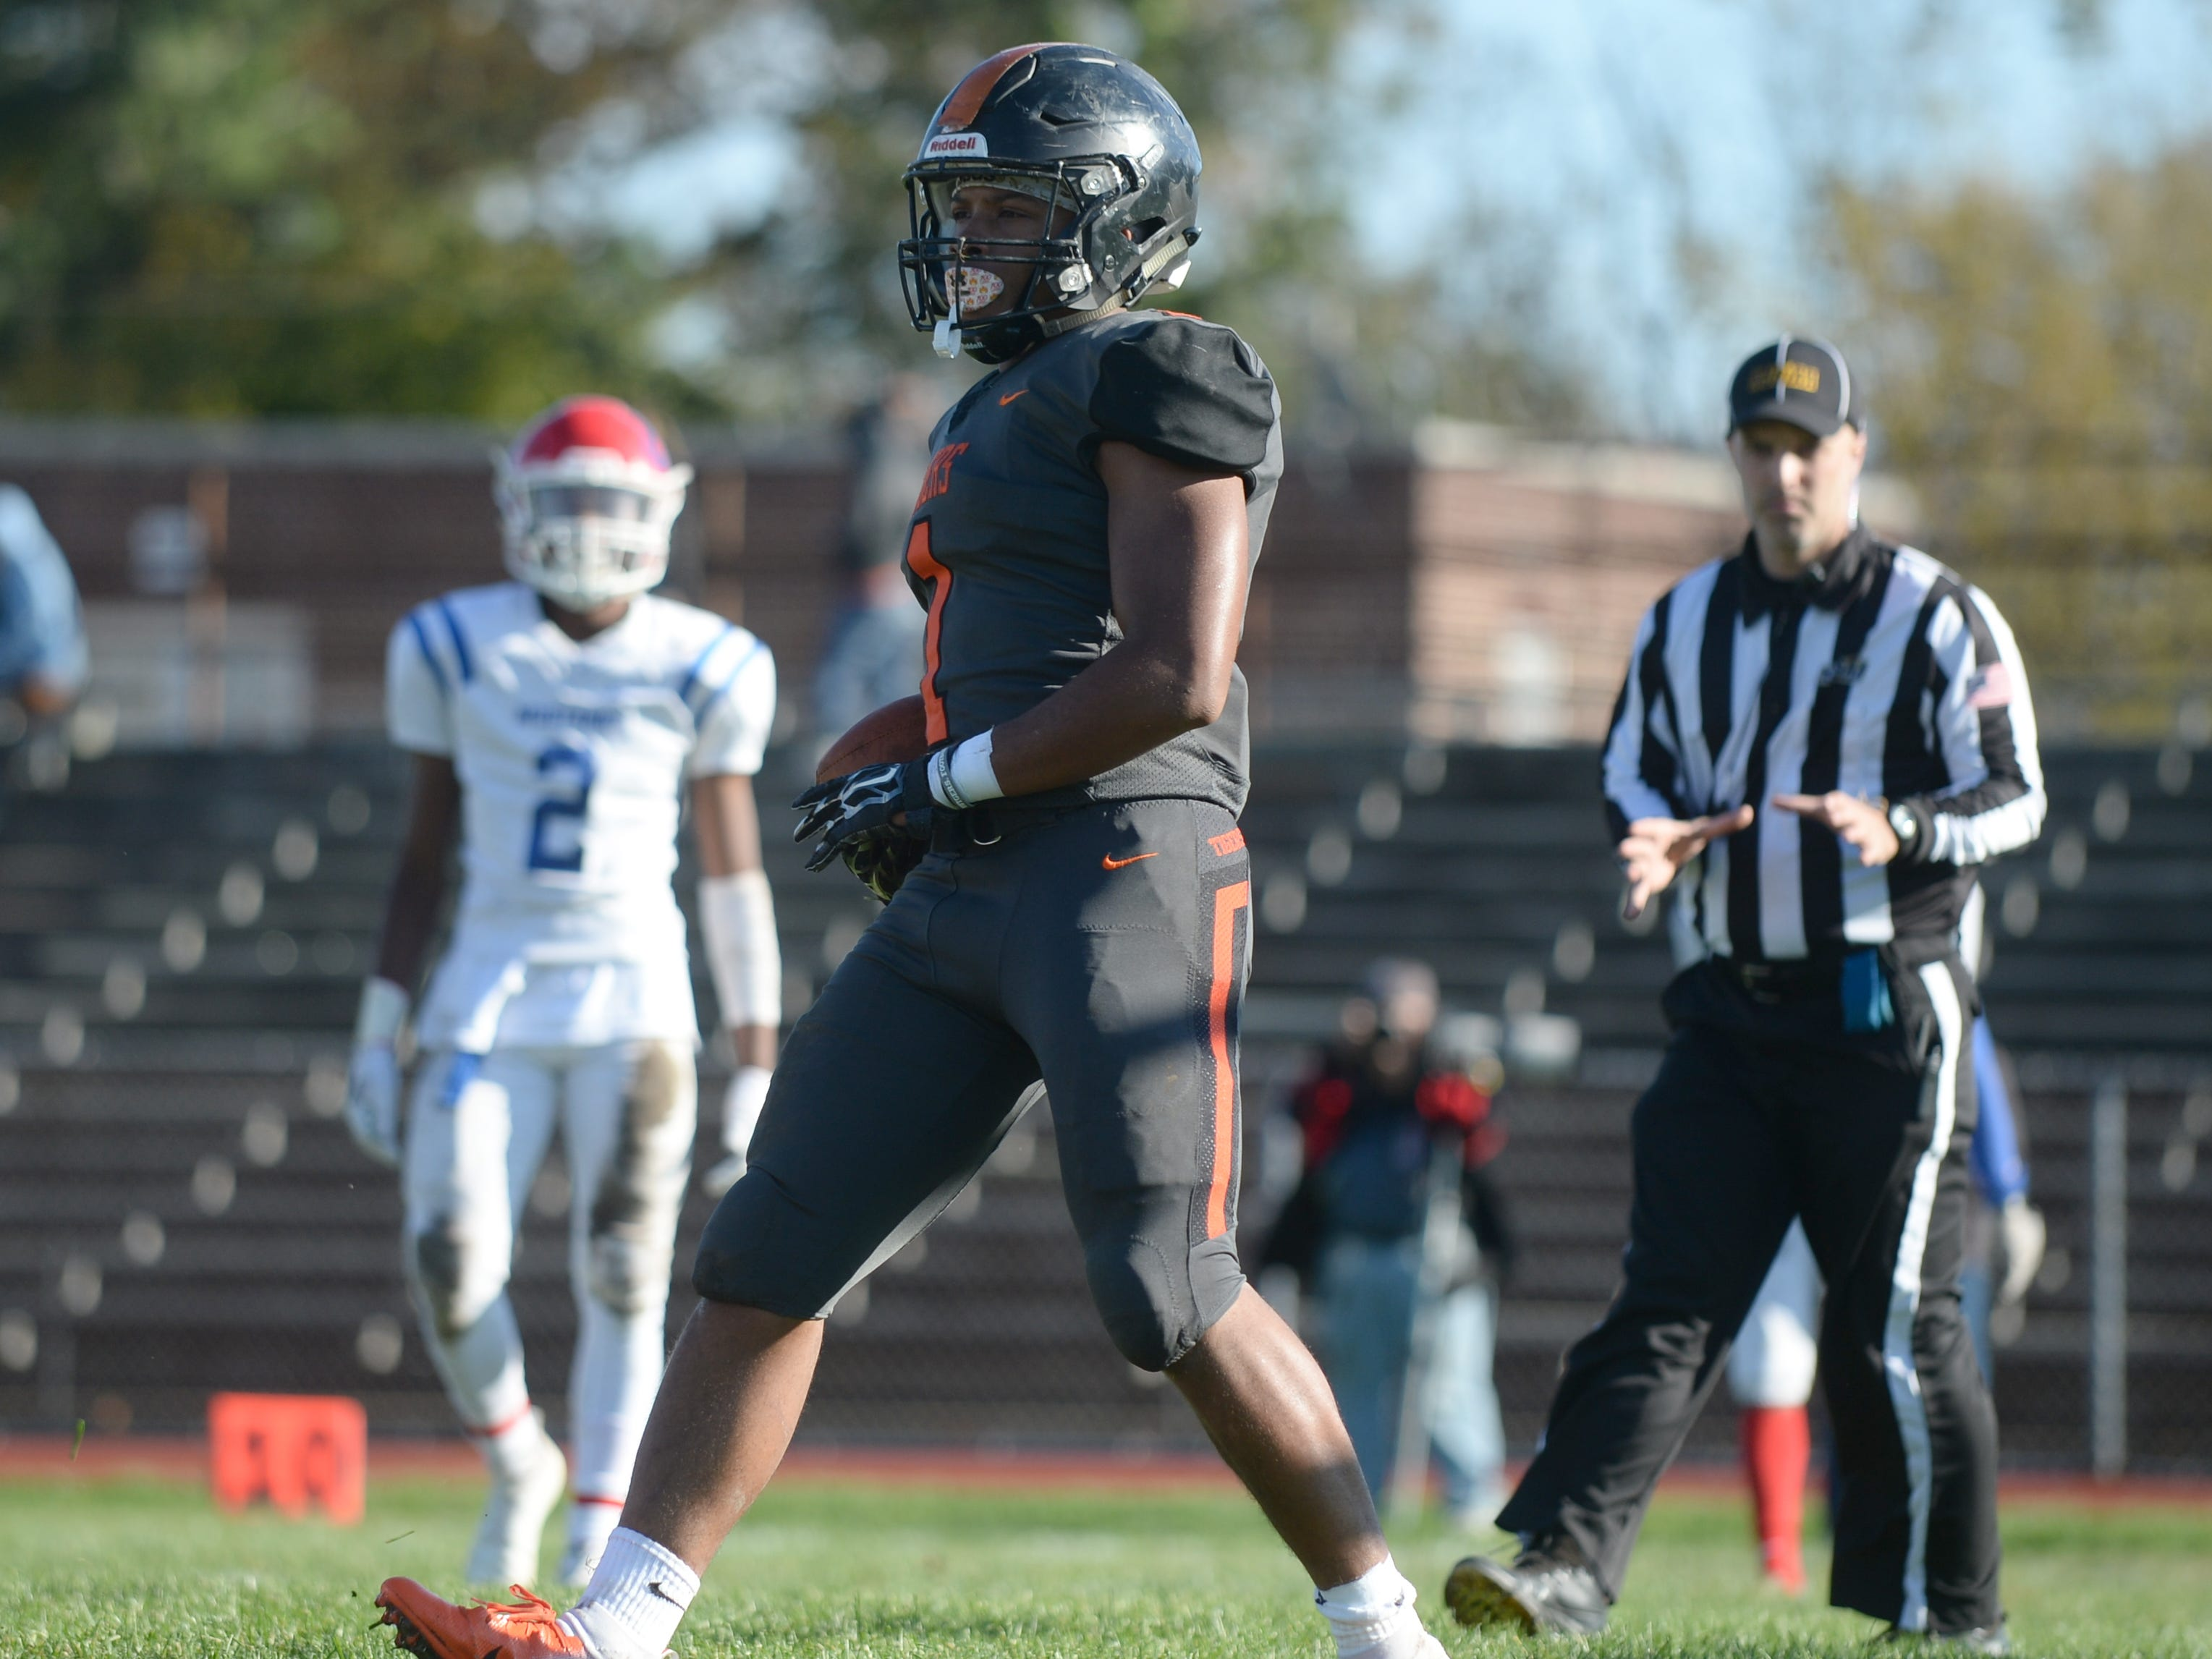 Woodrow Wilson's Muheem Mccargo reacts after carrying the ball for a touchdown during Saturday's South Jersey Group 3 first round game against Triton at Woodrow Wilson High School, Nov. 3, 2018.